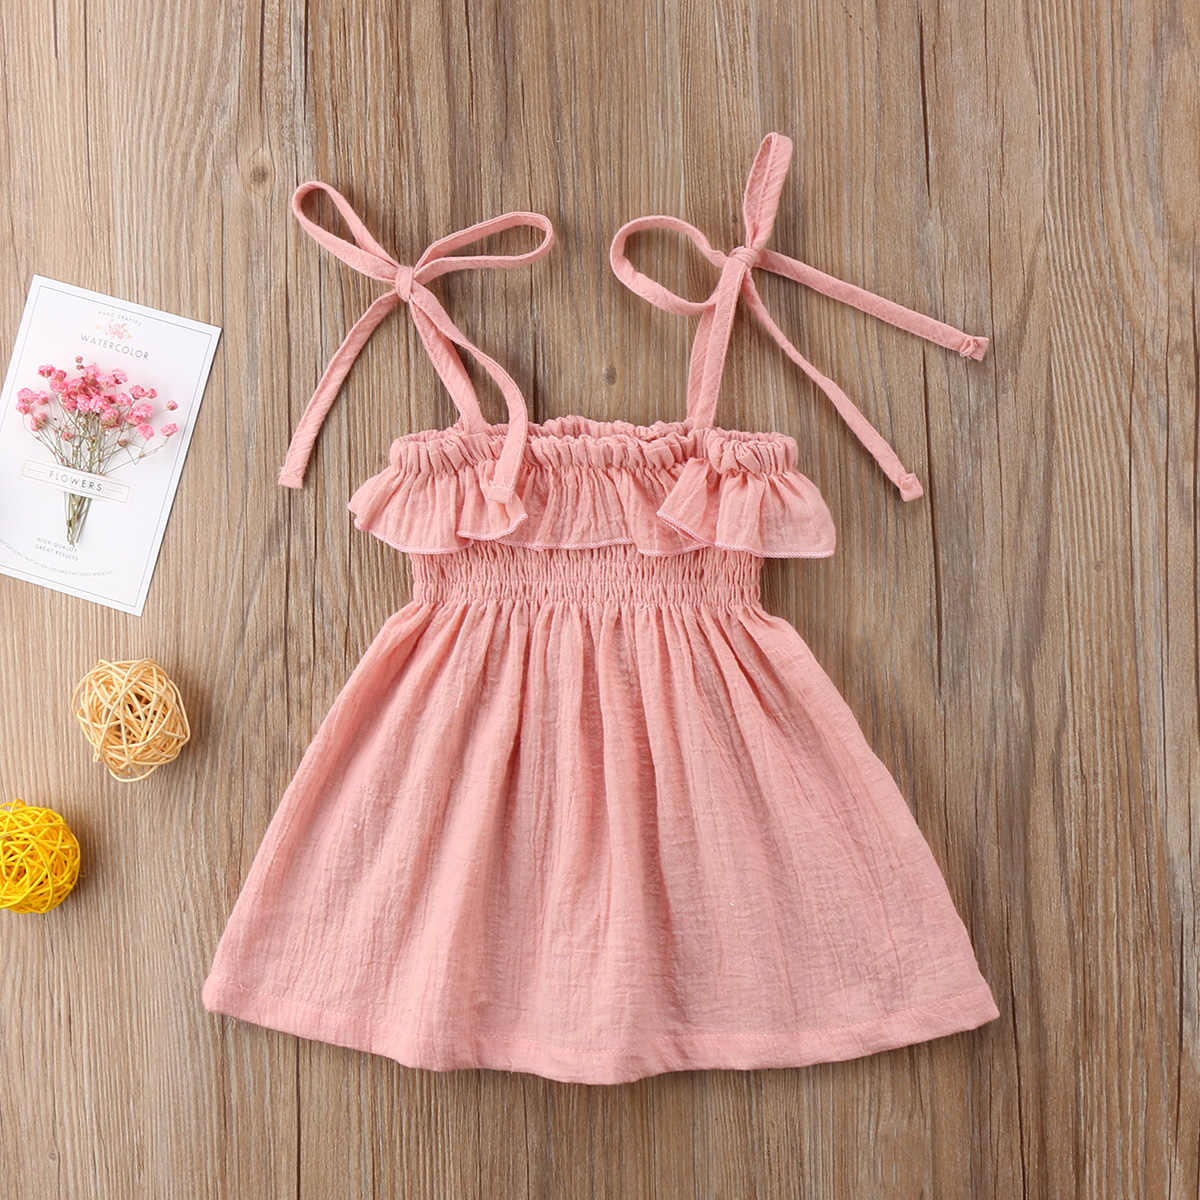 8d788e7f6c ... Toddler Infant Kids Baby Girls Summer Bathing Suit Bikini Beach Cover  Ups Dress Princess Party Wedding ...